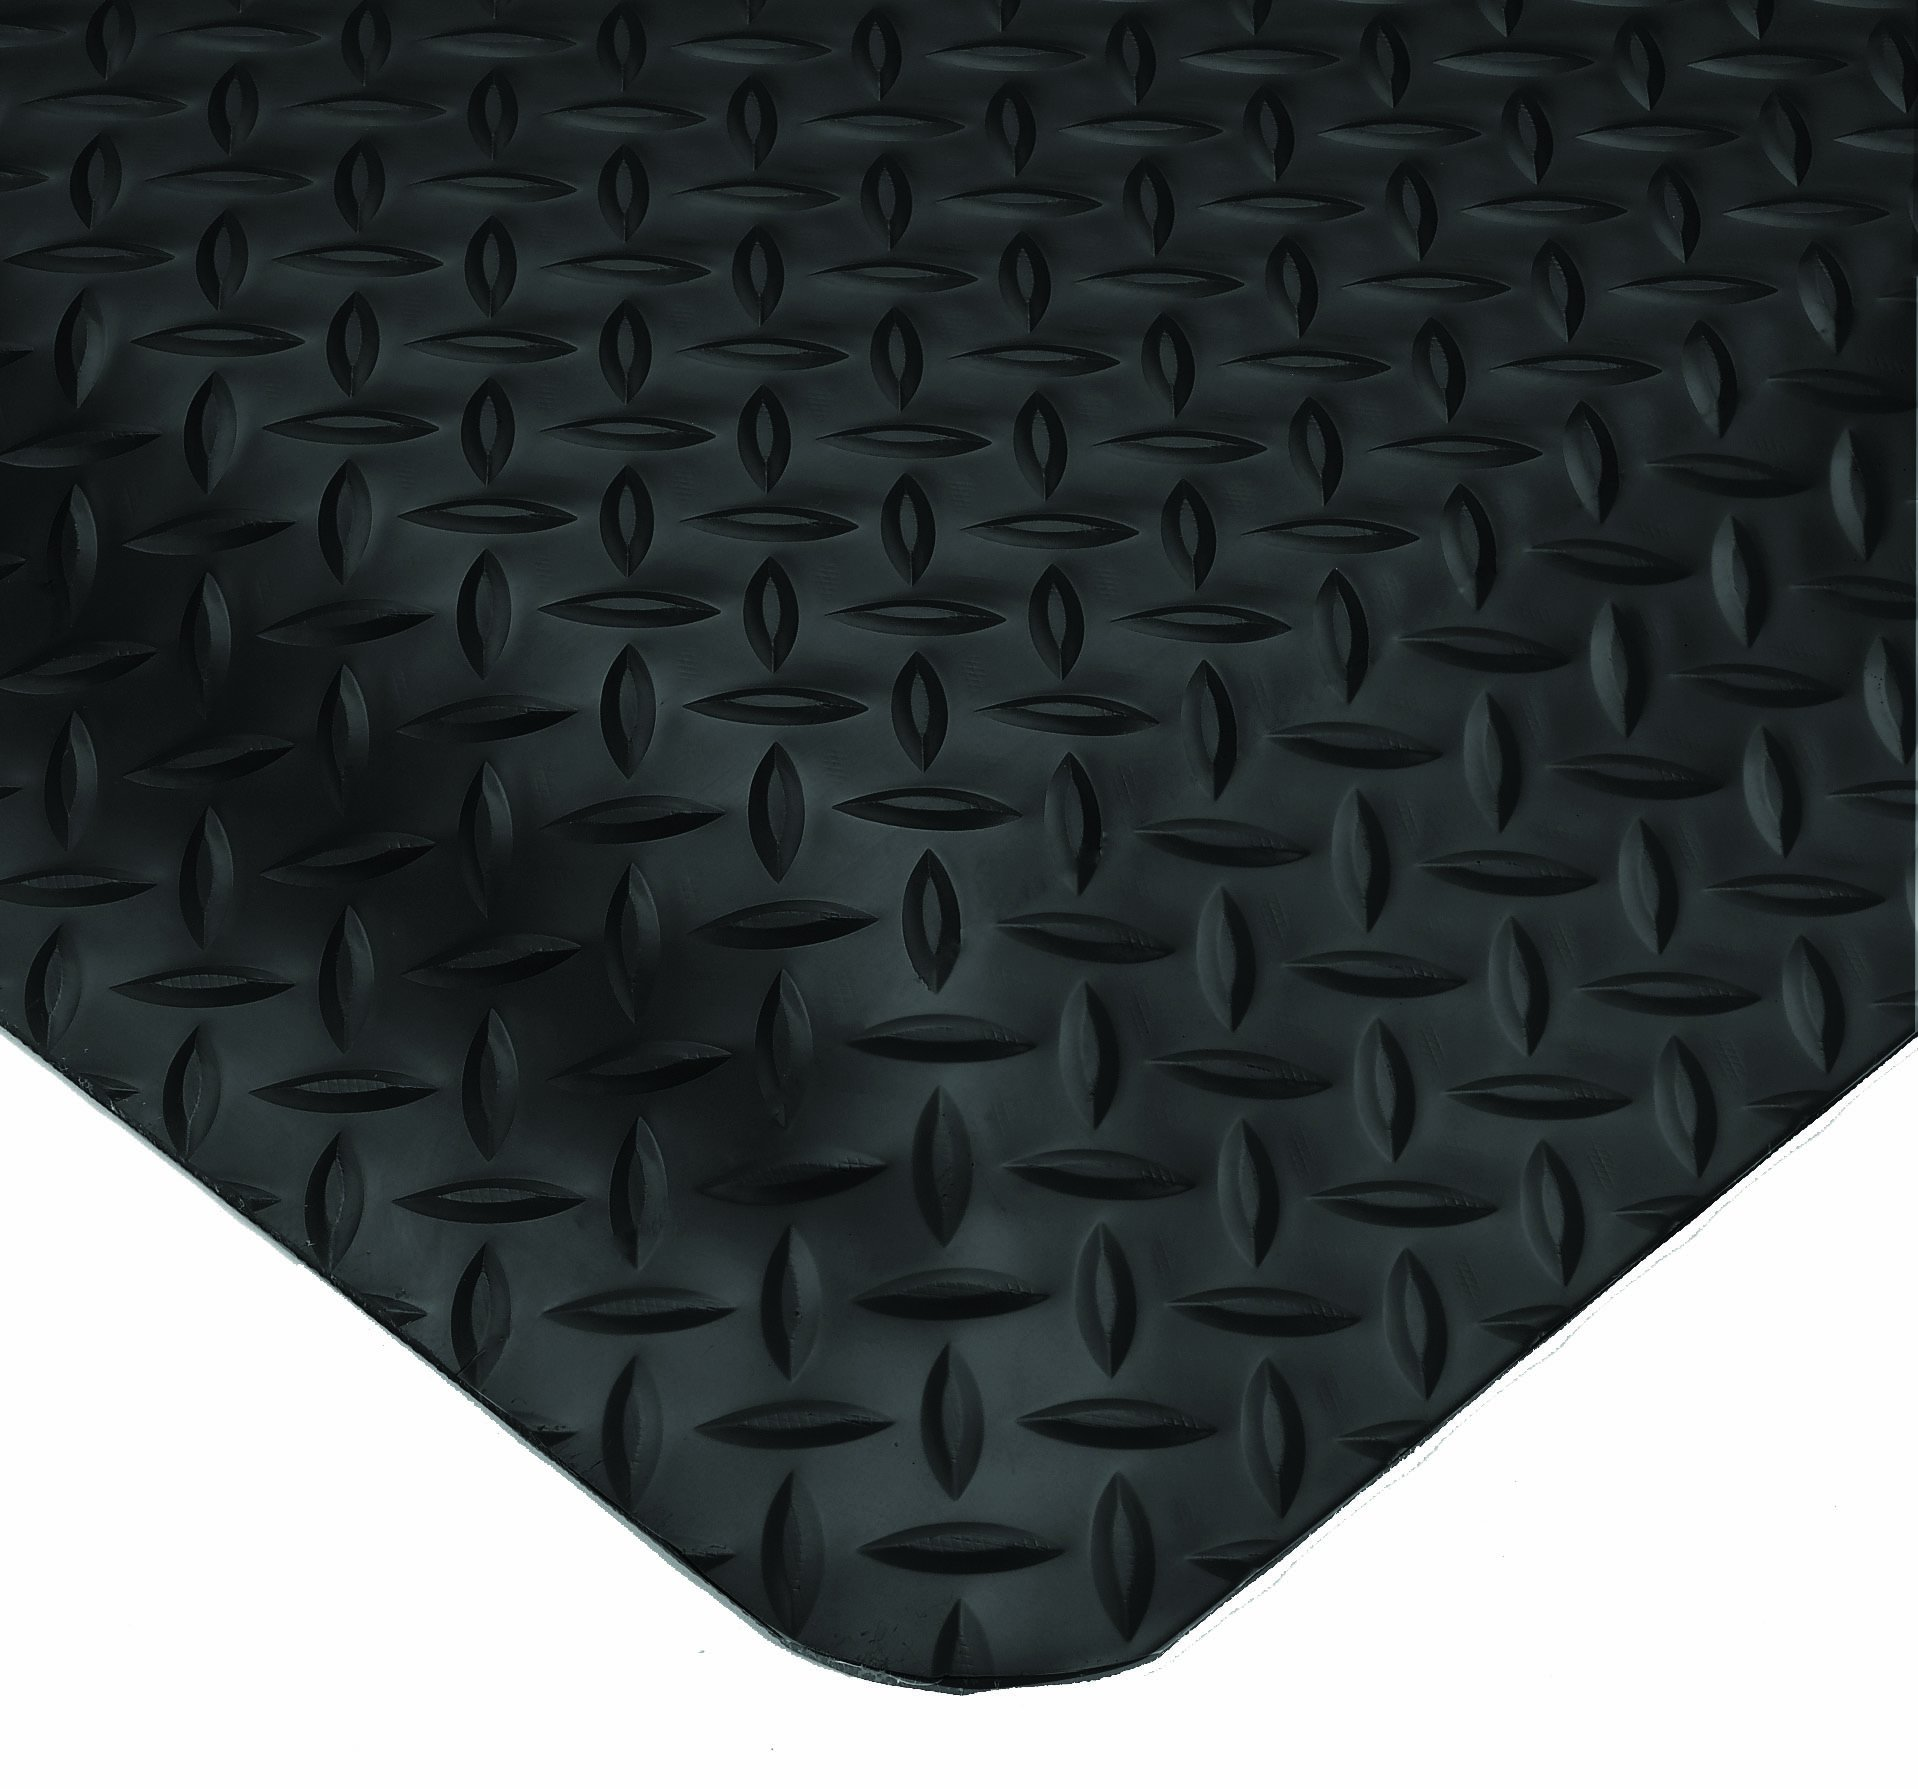 Wearwell PVC 414 UltraSoft Diamond-Plate Heavy Duty Anti-Fatigue Mat, Safety Beveled Edges, for Dry Areas, 3' Width x 10' Length x 15/16'' Thickness, Black